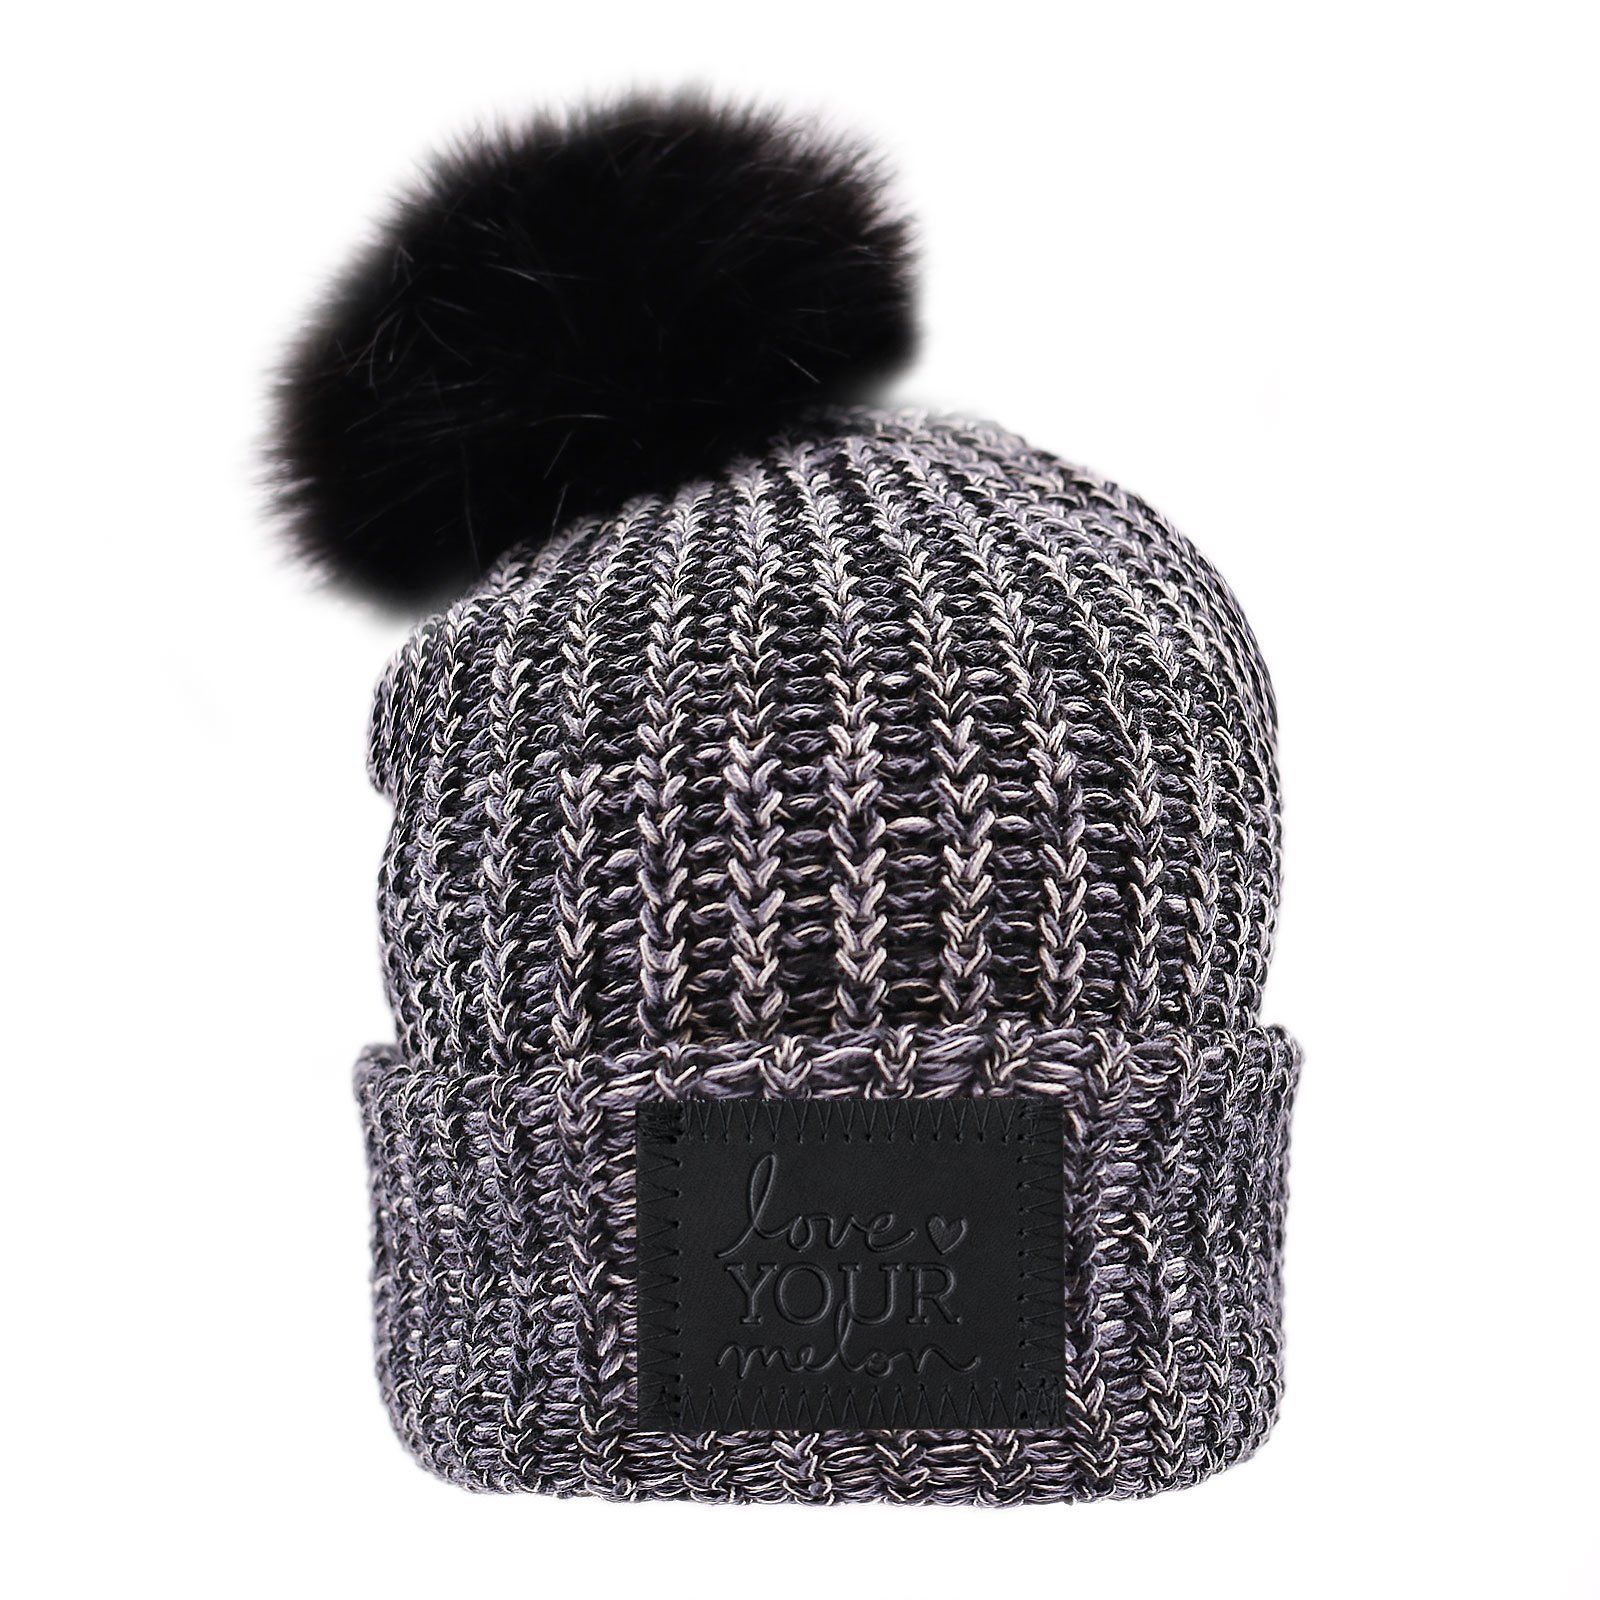 742d699bd1e Love Your Melon Moon Pom Beanie (Black Leather Patch)